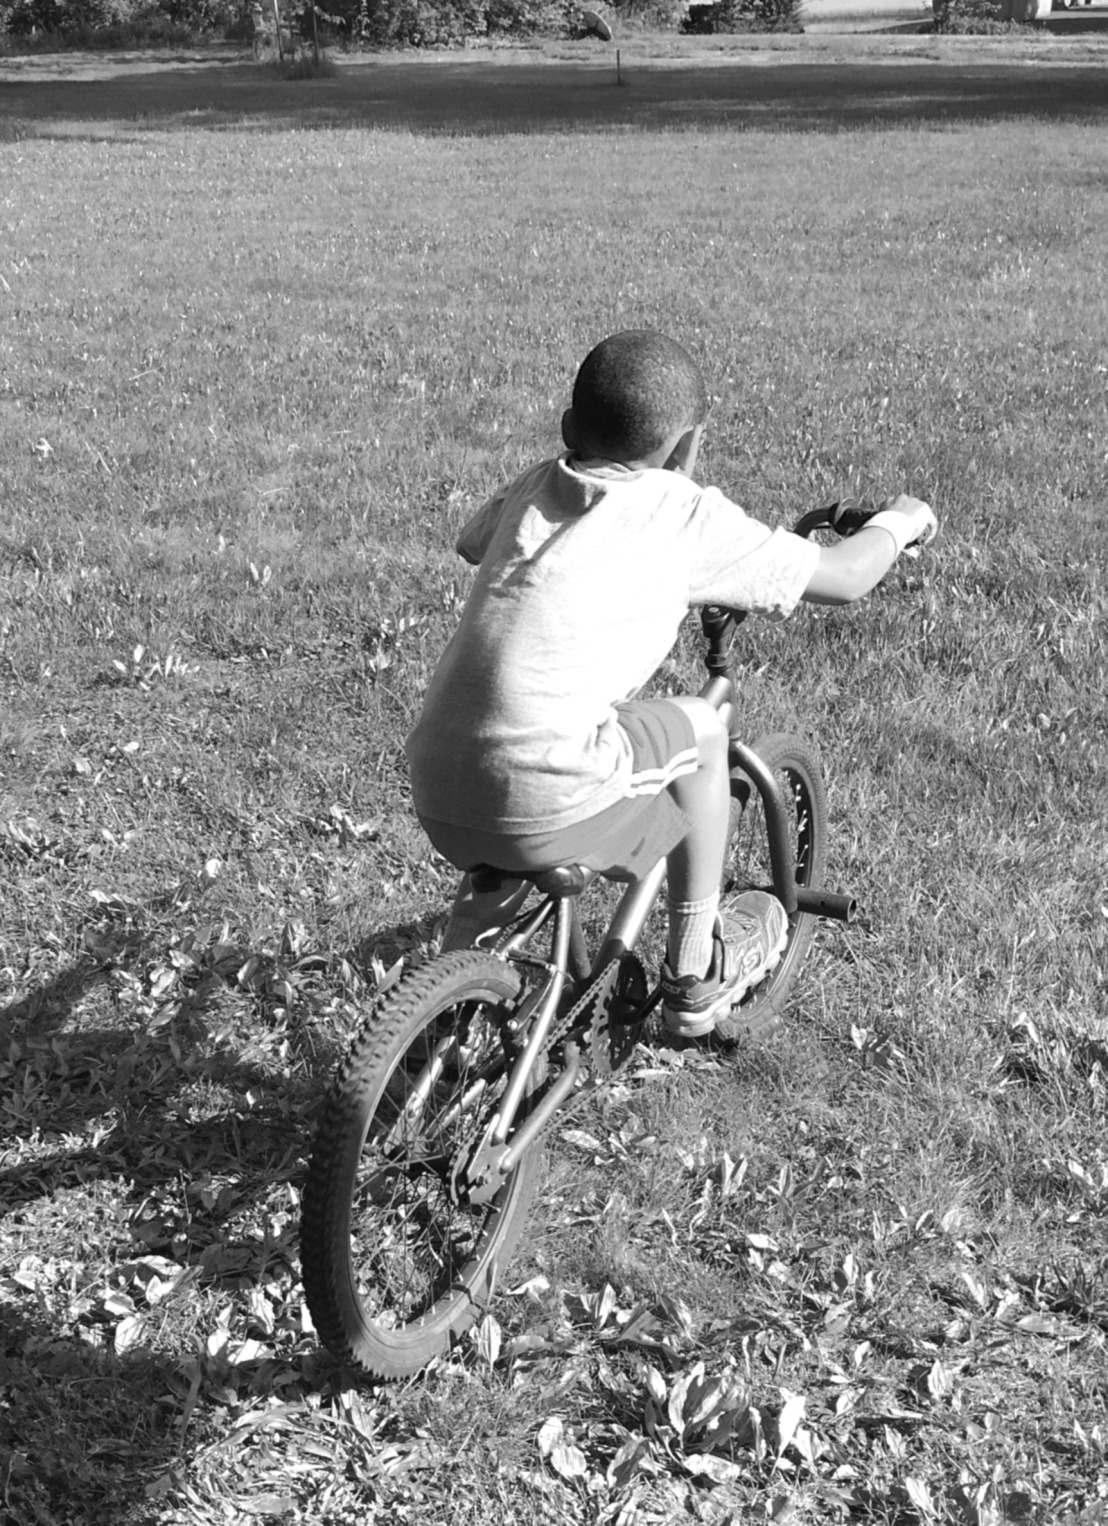 bw bike riding